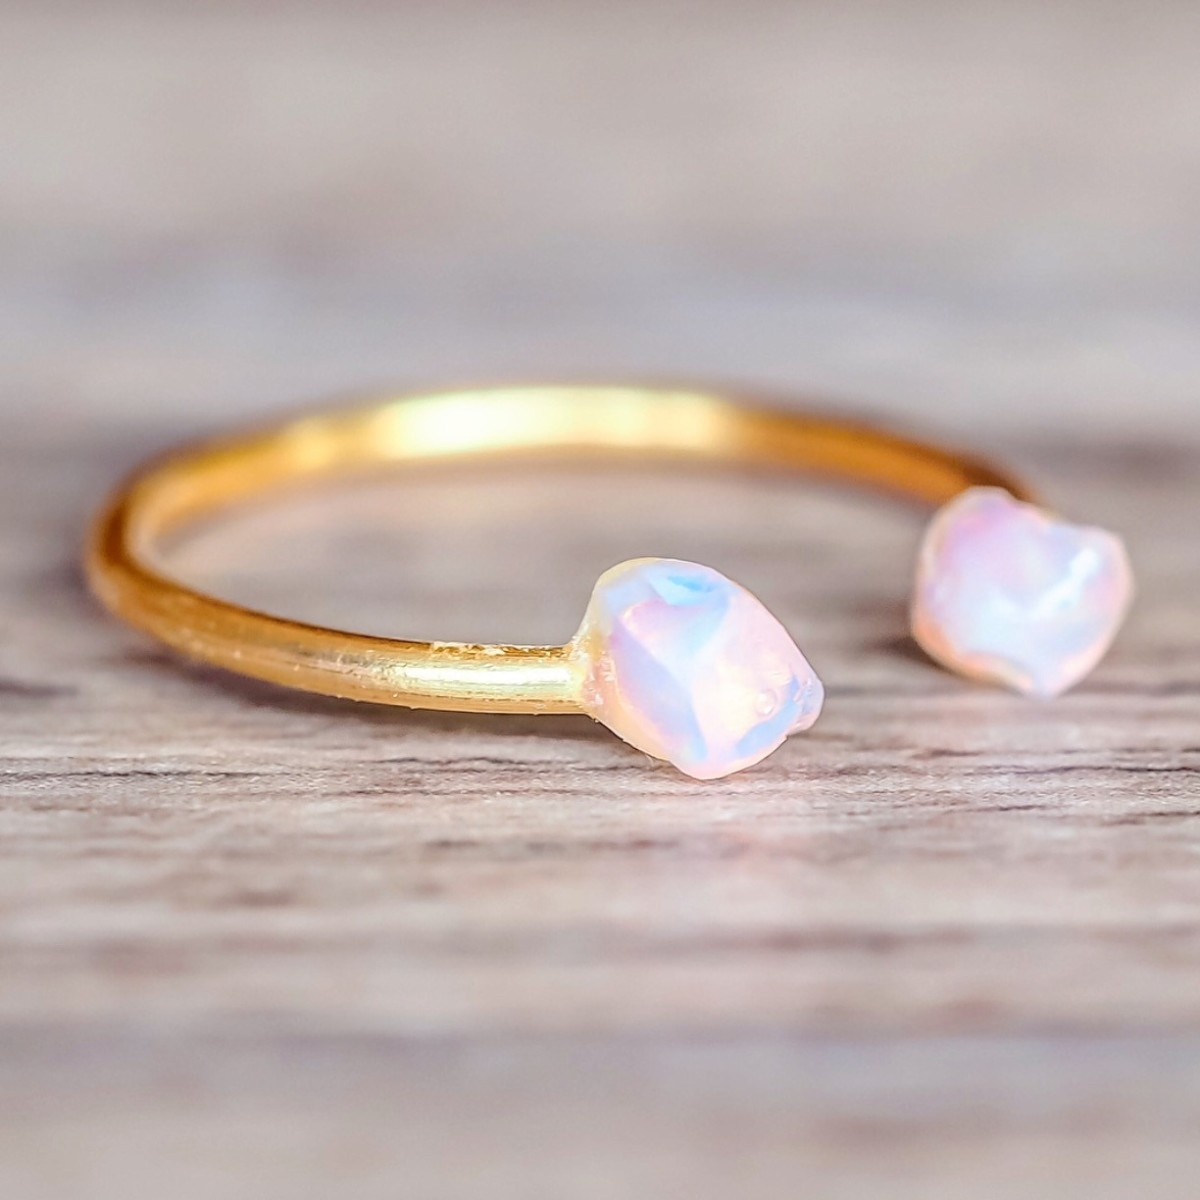 Gold_Little_Raw_Opal_Ring_Bohemian_Gypsy_Jewels_Indie_and_Harper